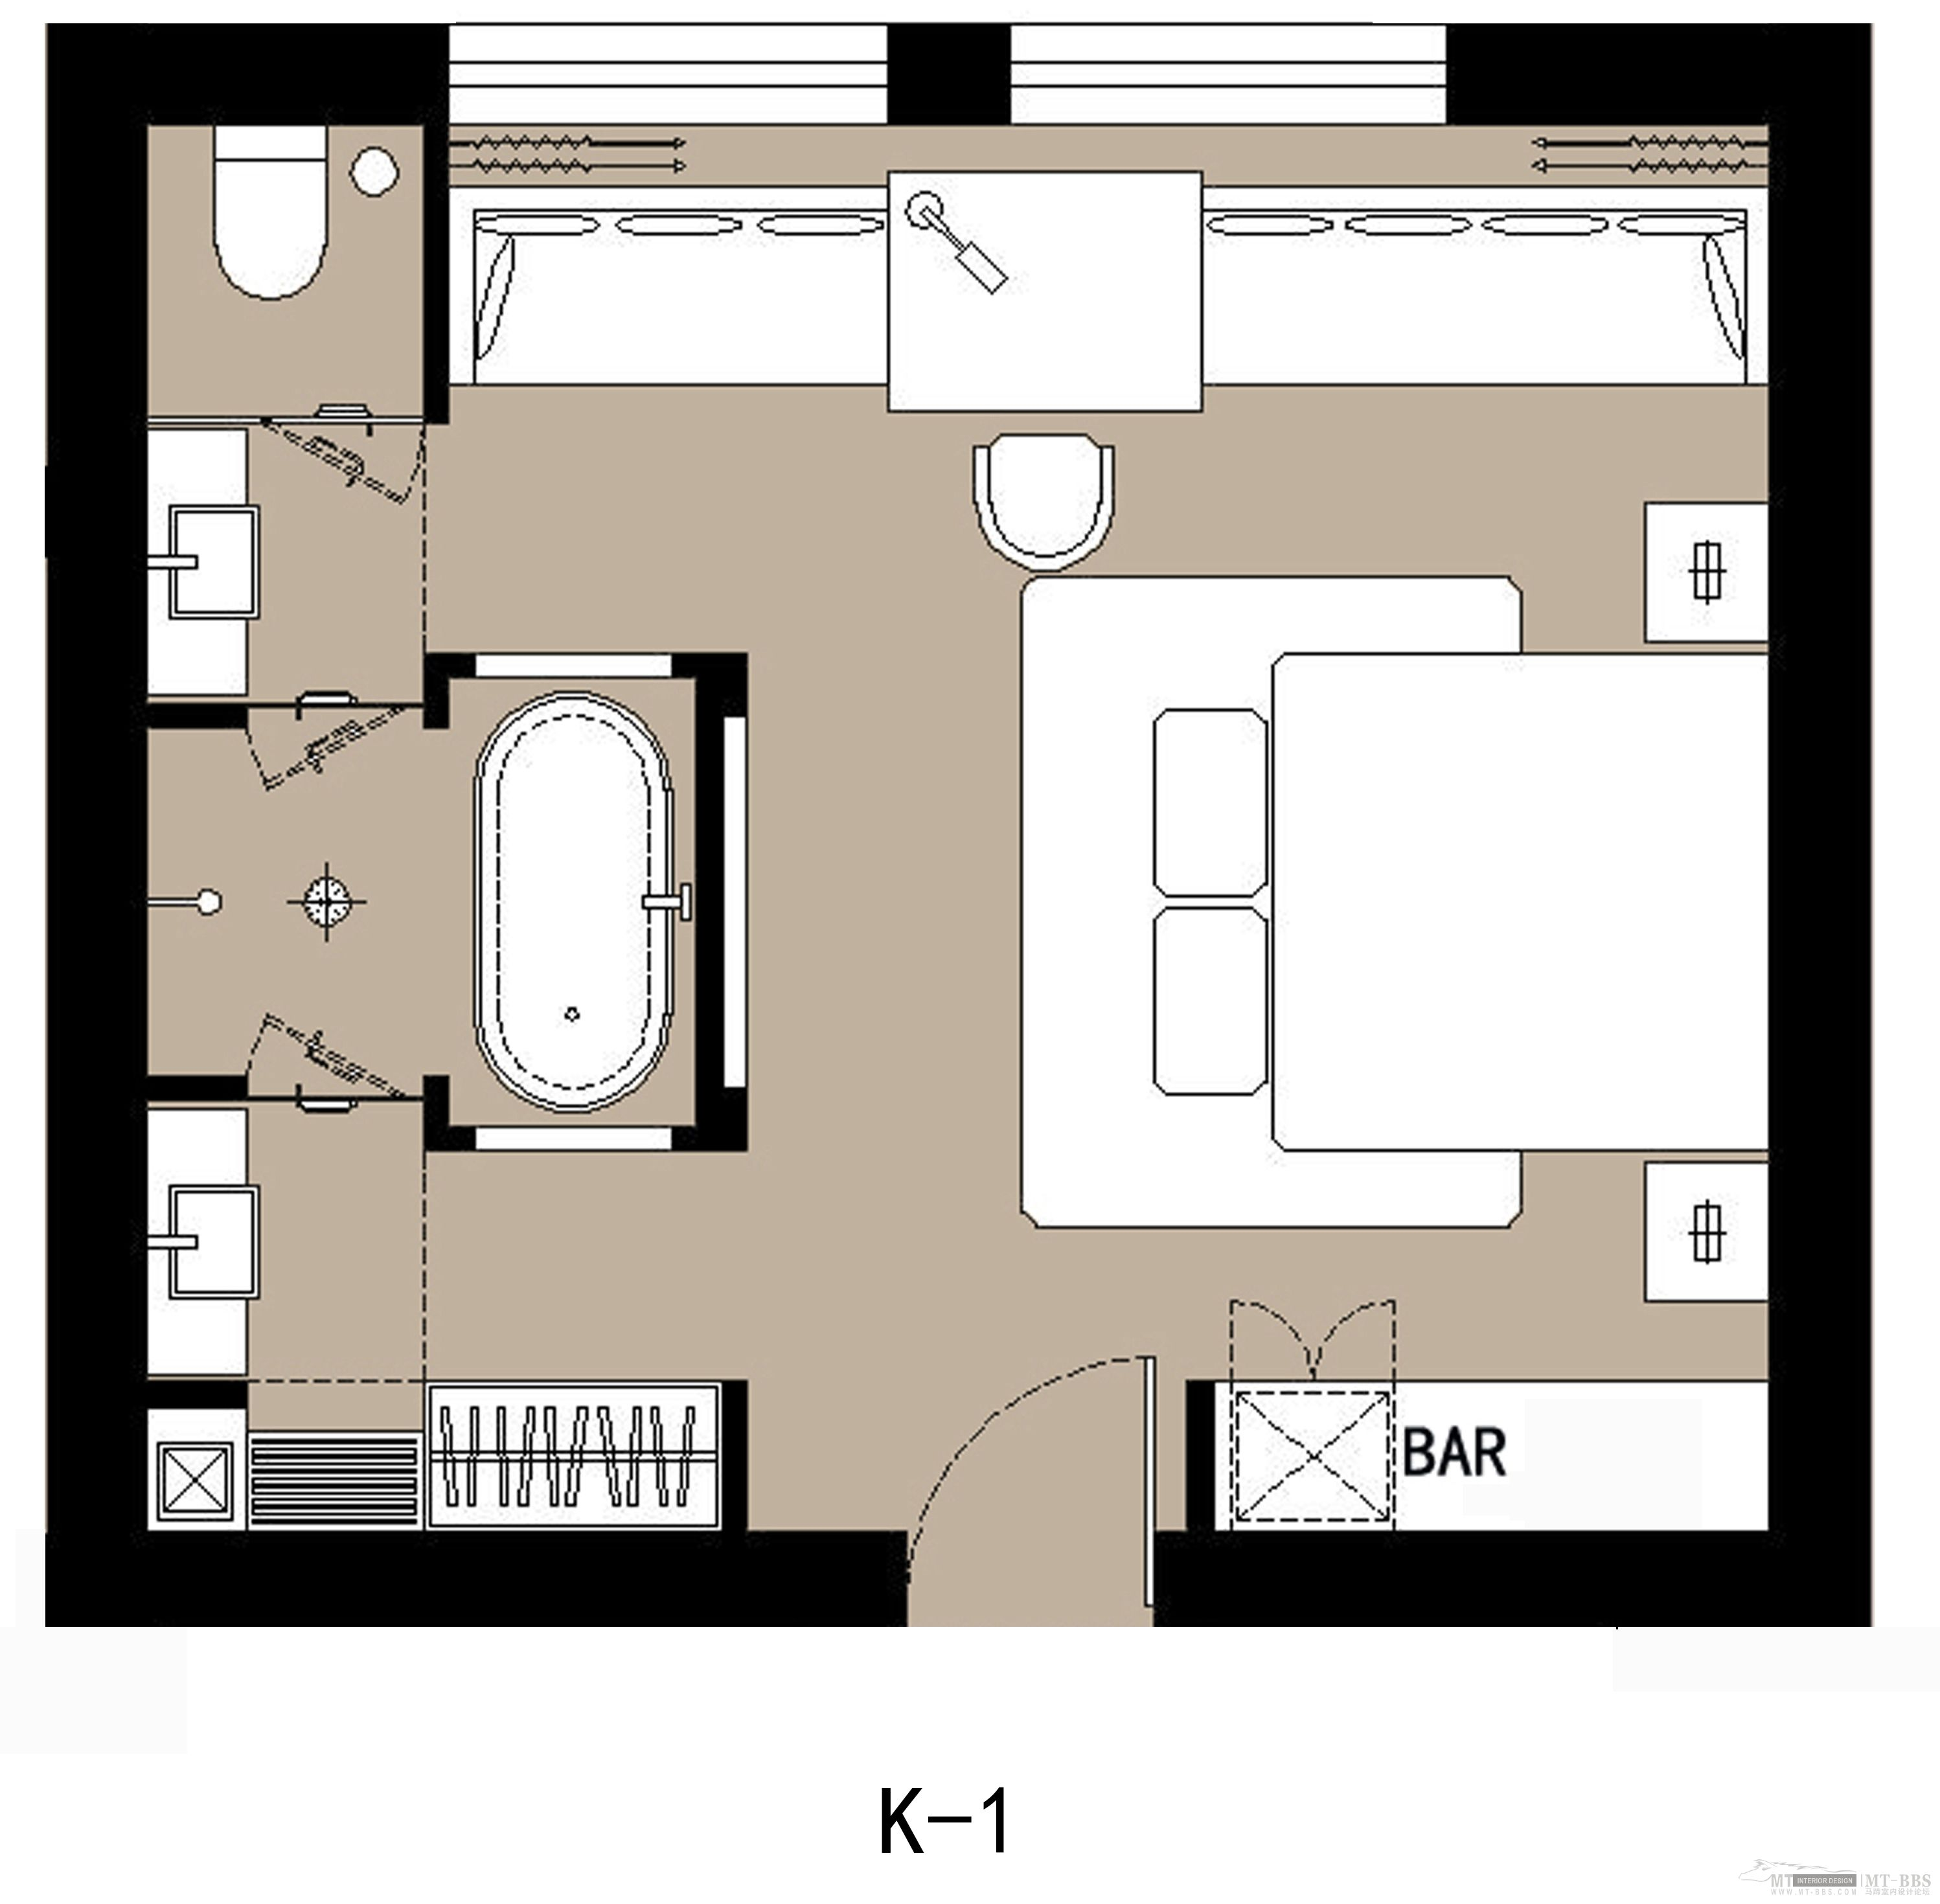 Plan Chambre Hotel Typical Hotel Room Floor Plan Click Here For The Resort